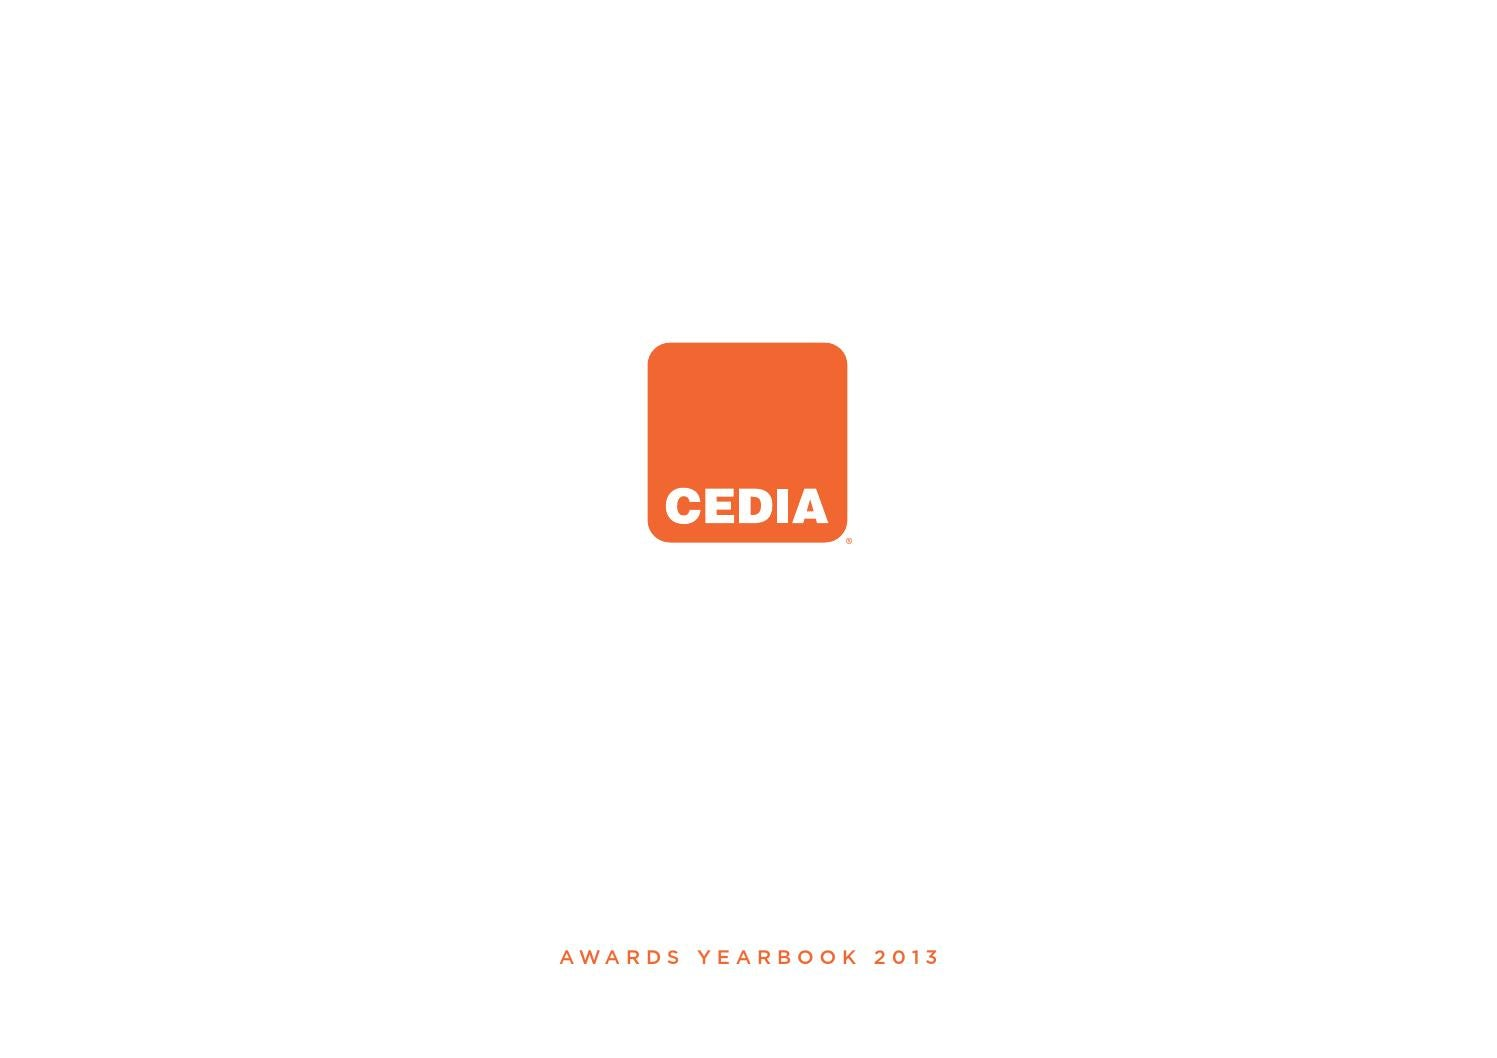 Cedia Awards Yearbook 2013 By Cedia Emea Issuu